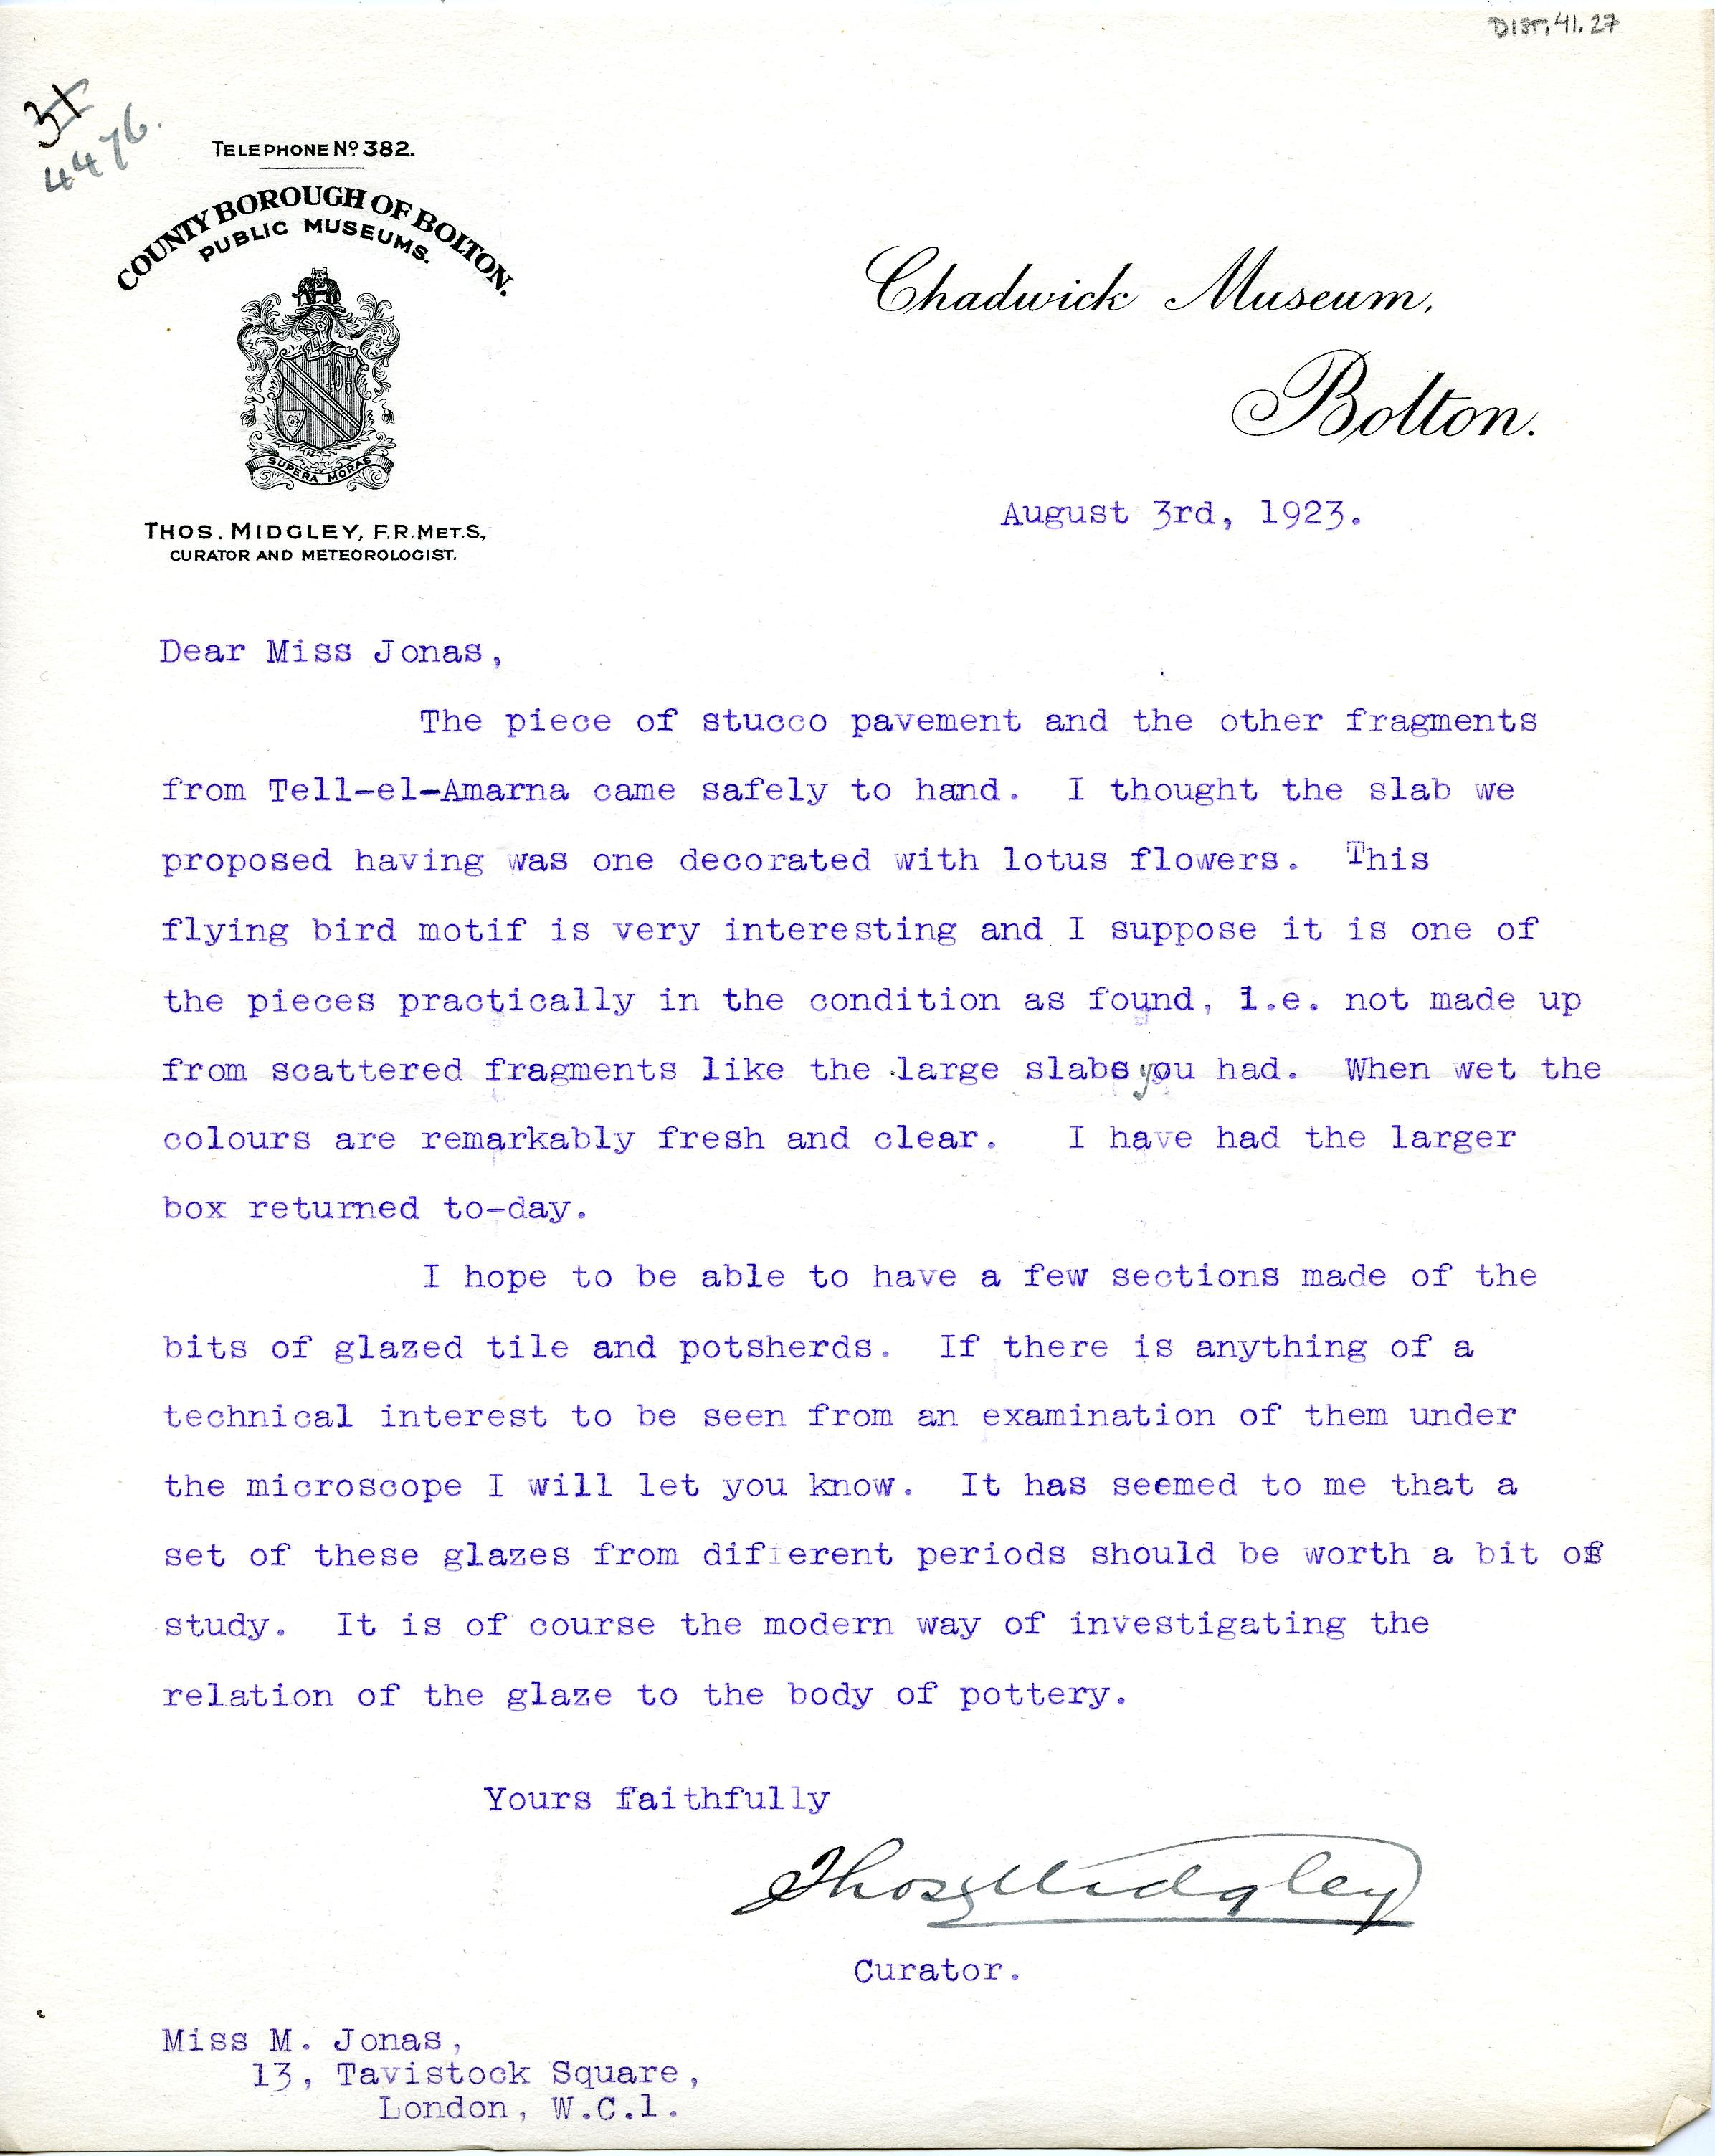 1922-76 Miscellaneous correspondence with museums DIST.41.27